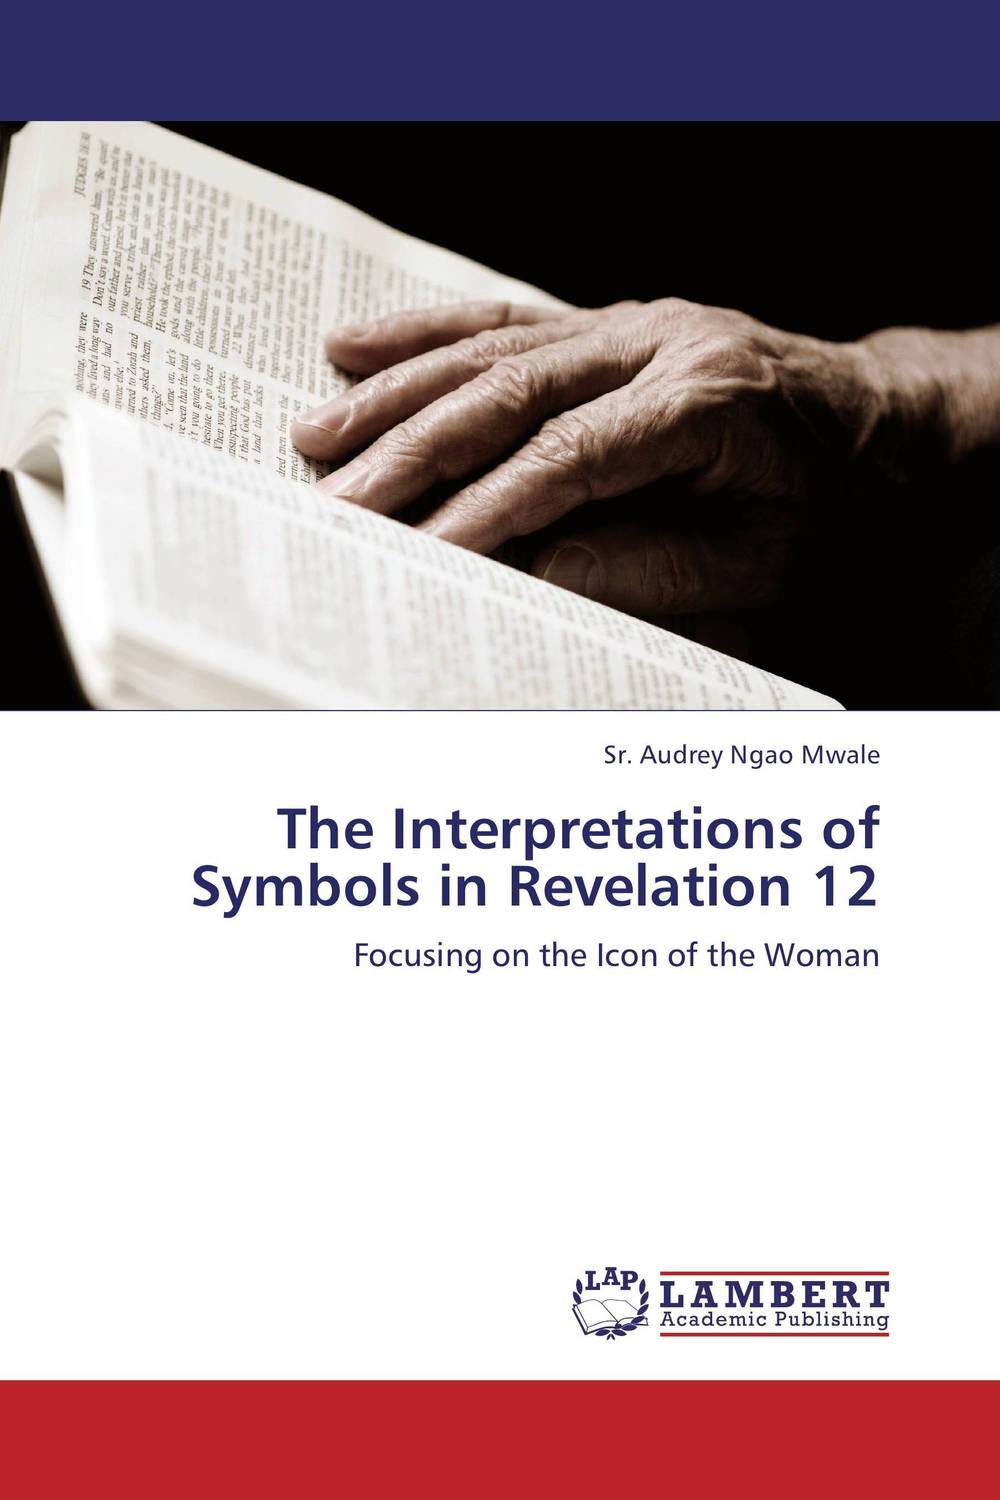 The Interpretations of Symbols in Revelation 12 sola scriptura benedict xvi s theology of the word of god